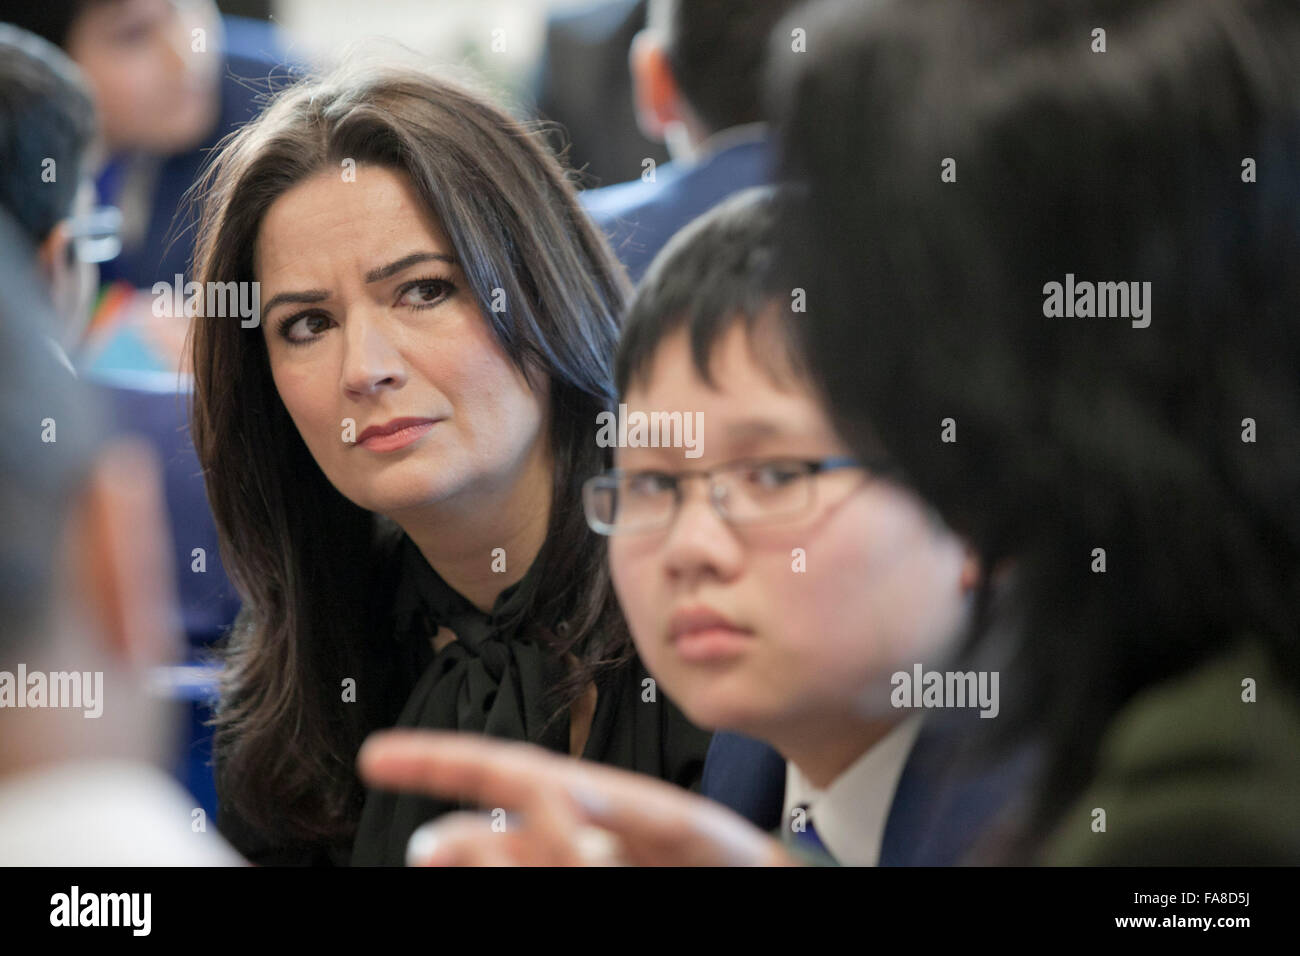 Coronation Street actress Debbie Rush visits a school in Manchester - Stock Image